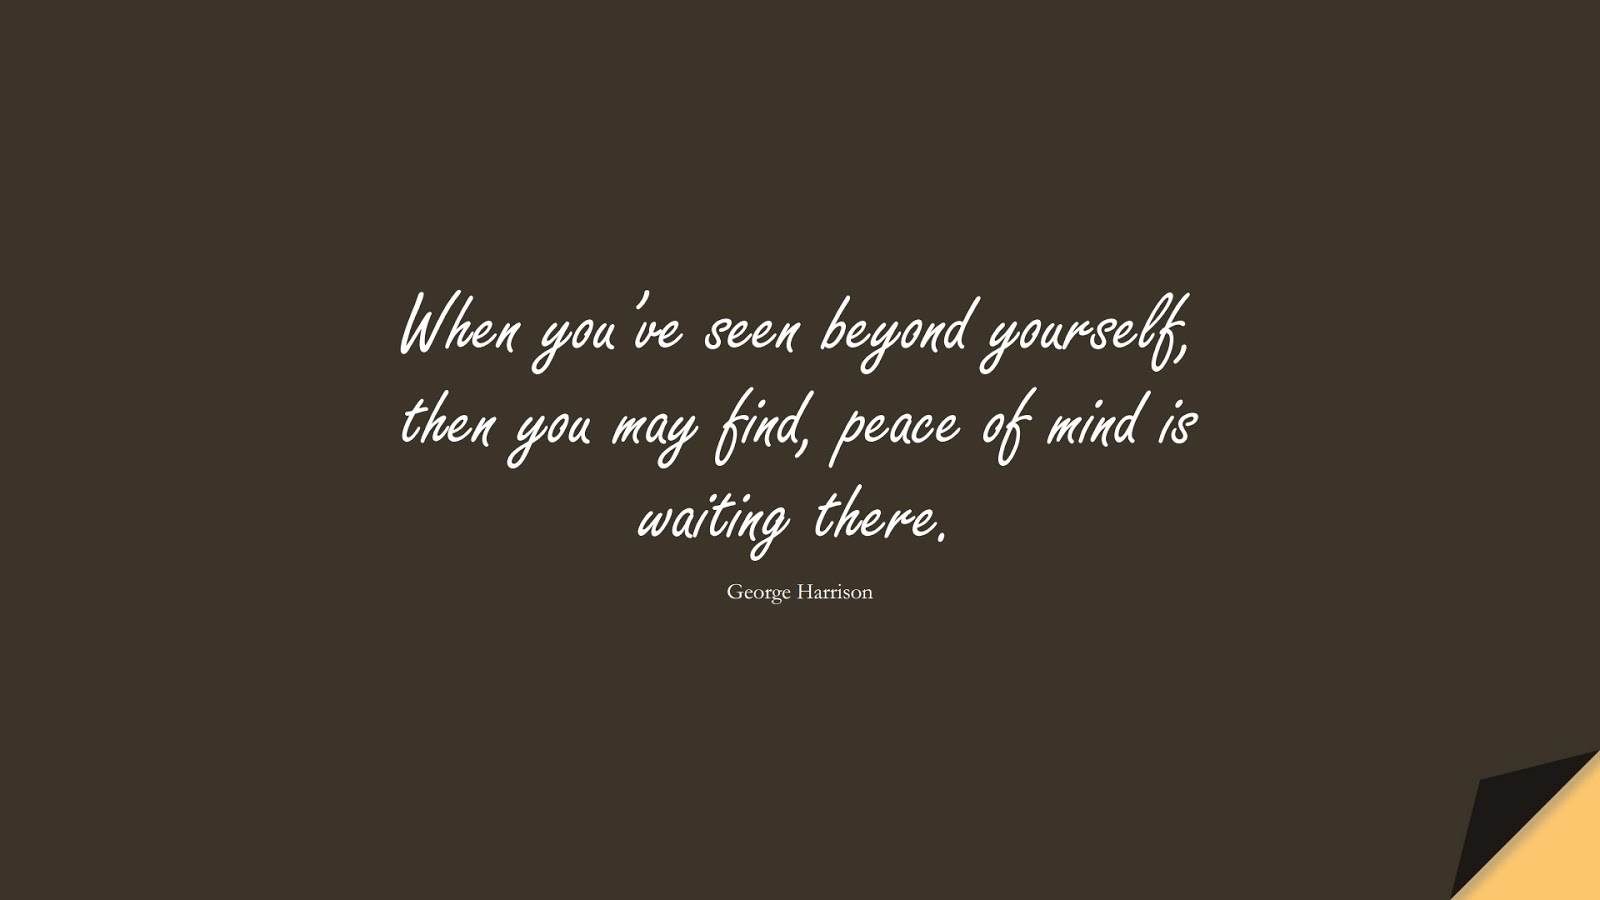 When you've seen beyond yourself, then you may find, peace of mind is waiting there. (George Harrison);  #ShortQuotes